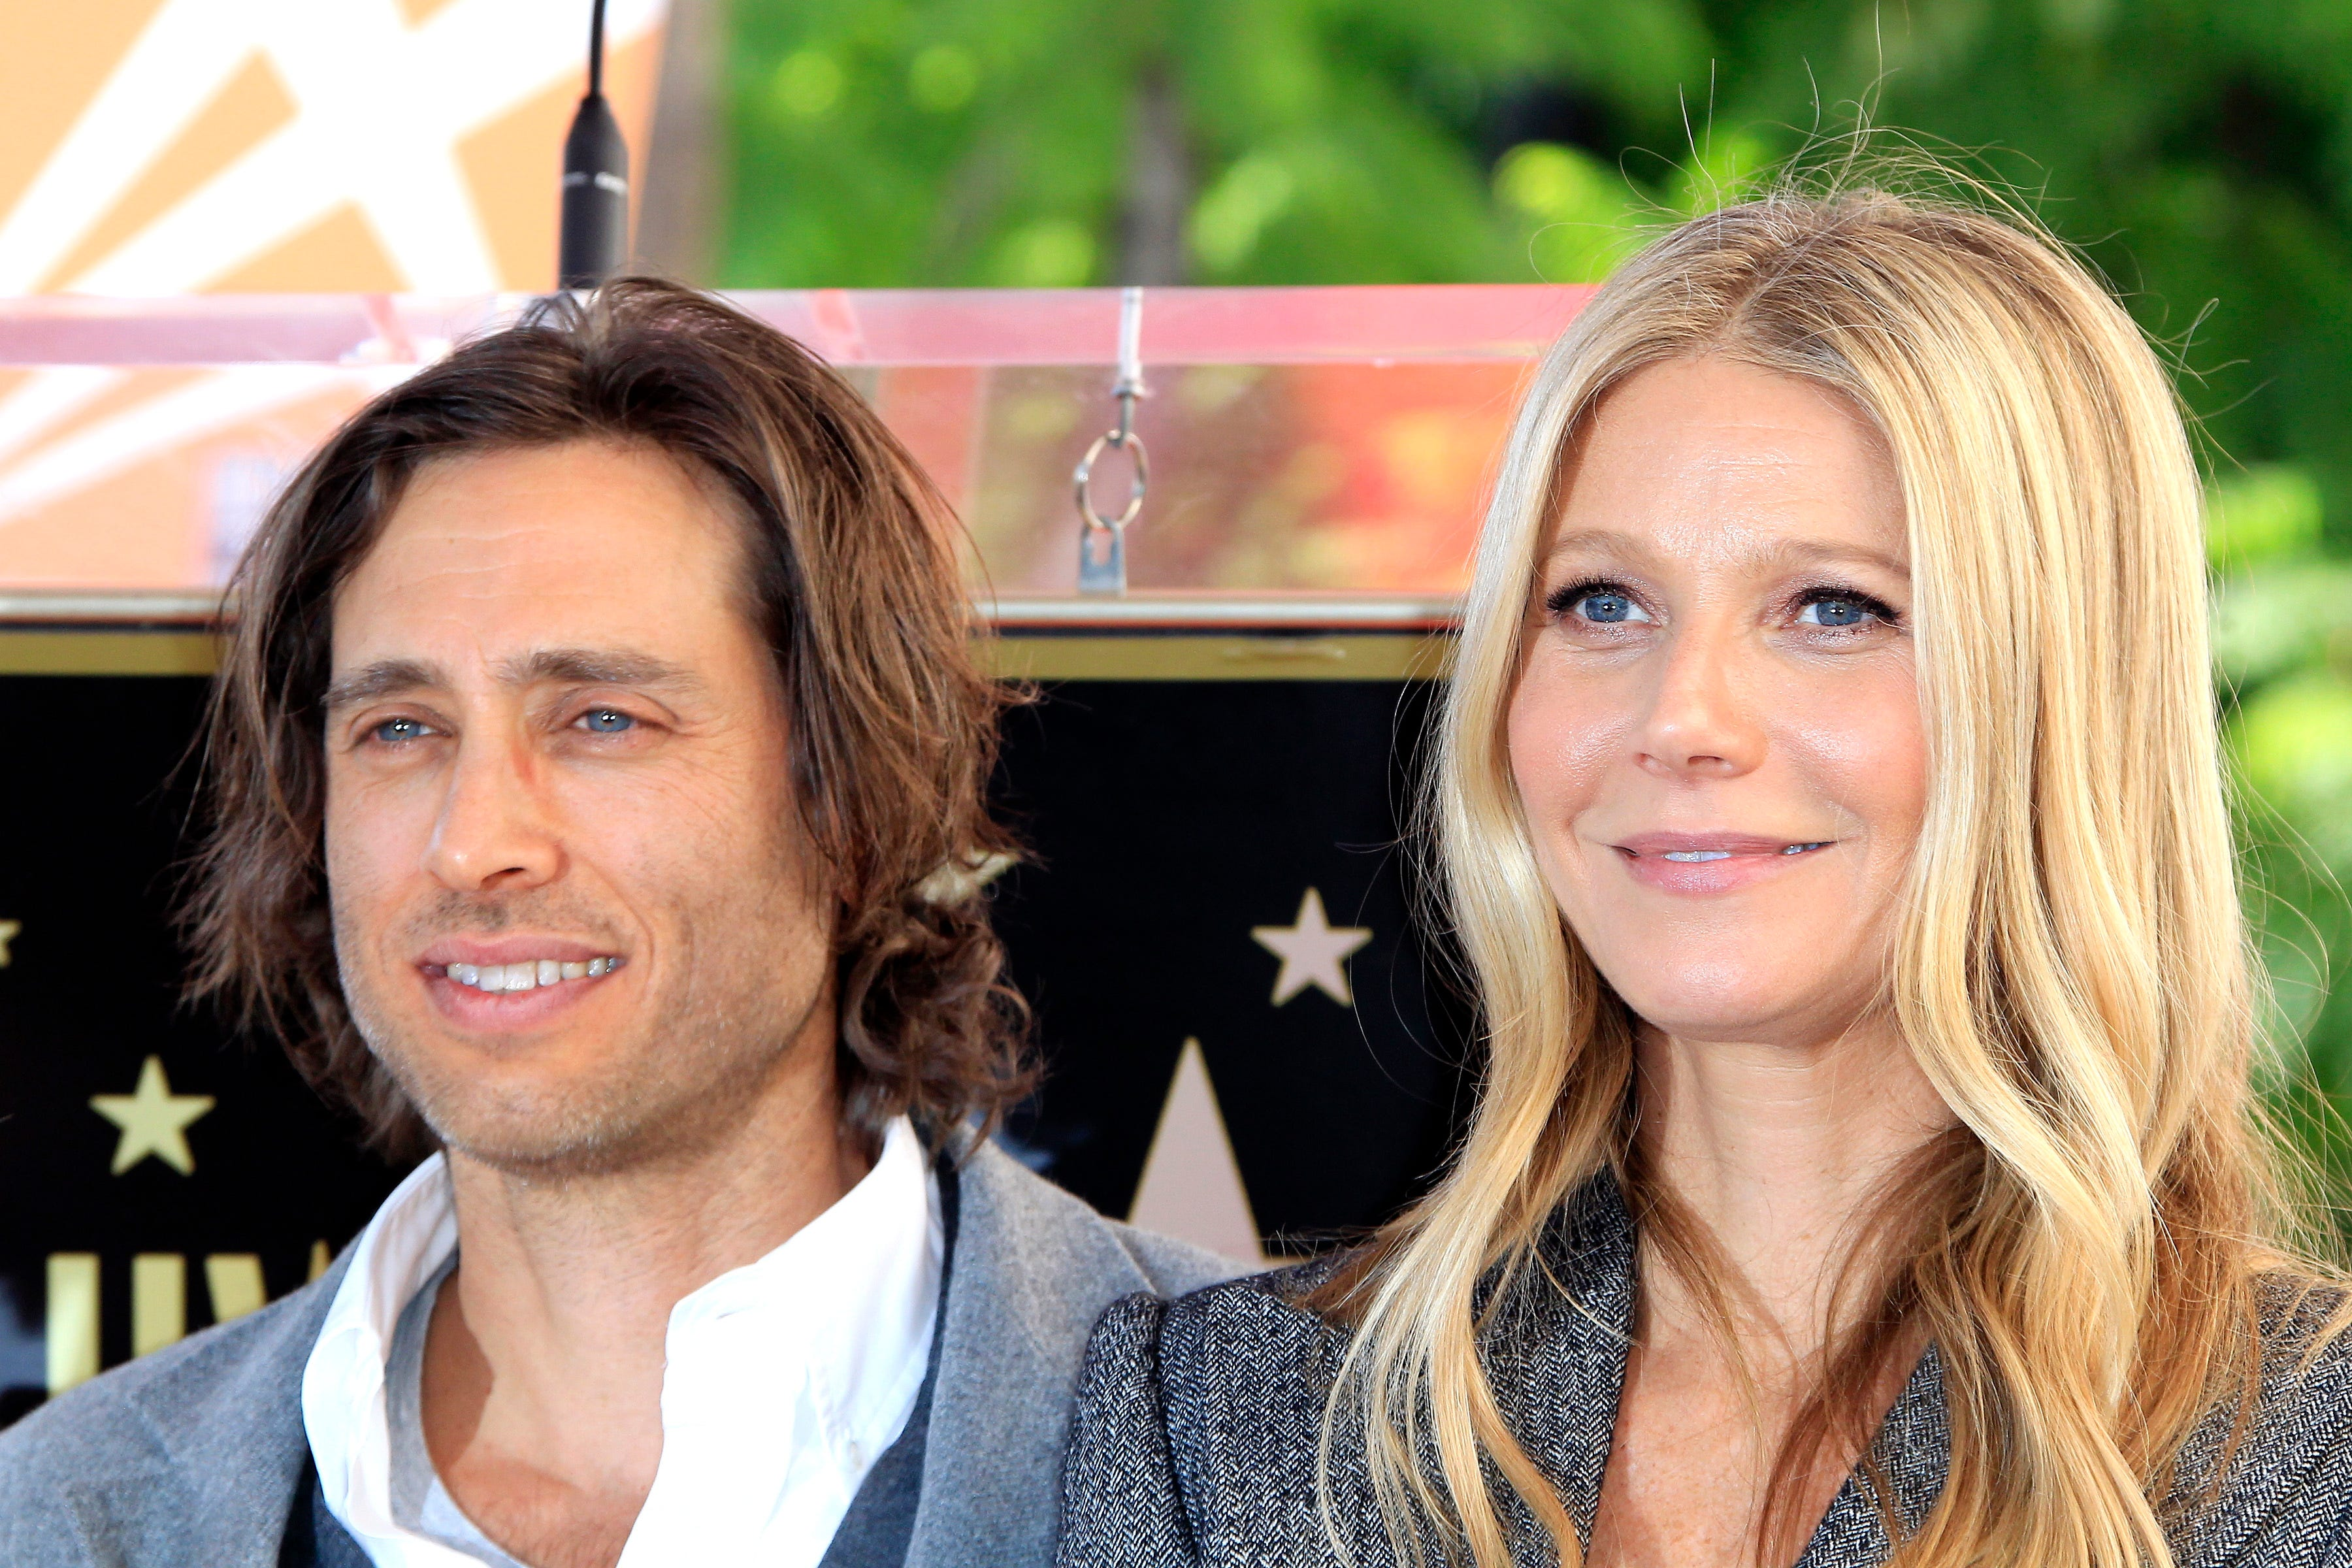 Gwyneth Paltrow: Chris Martin and I were 'meant to be together'